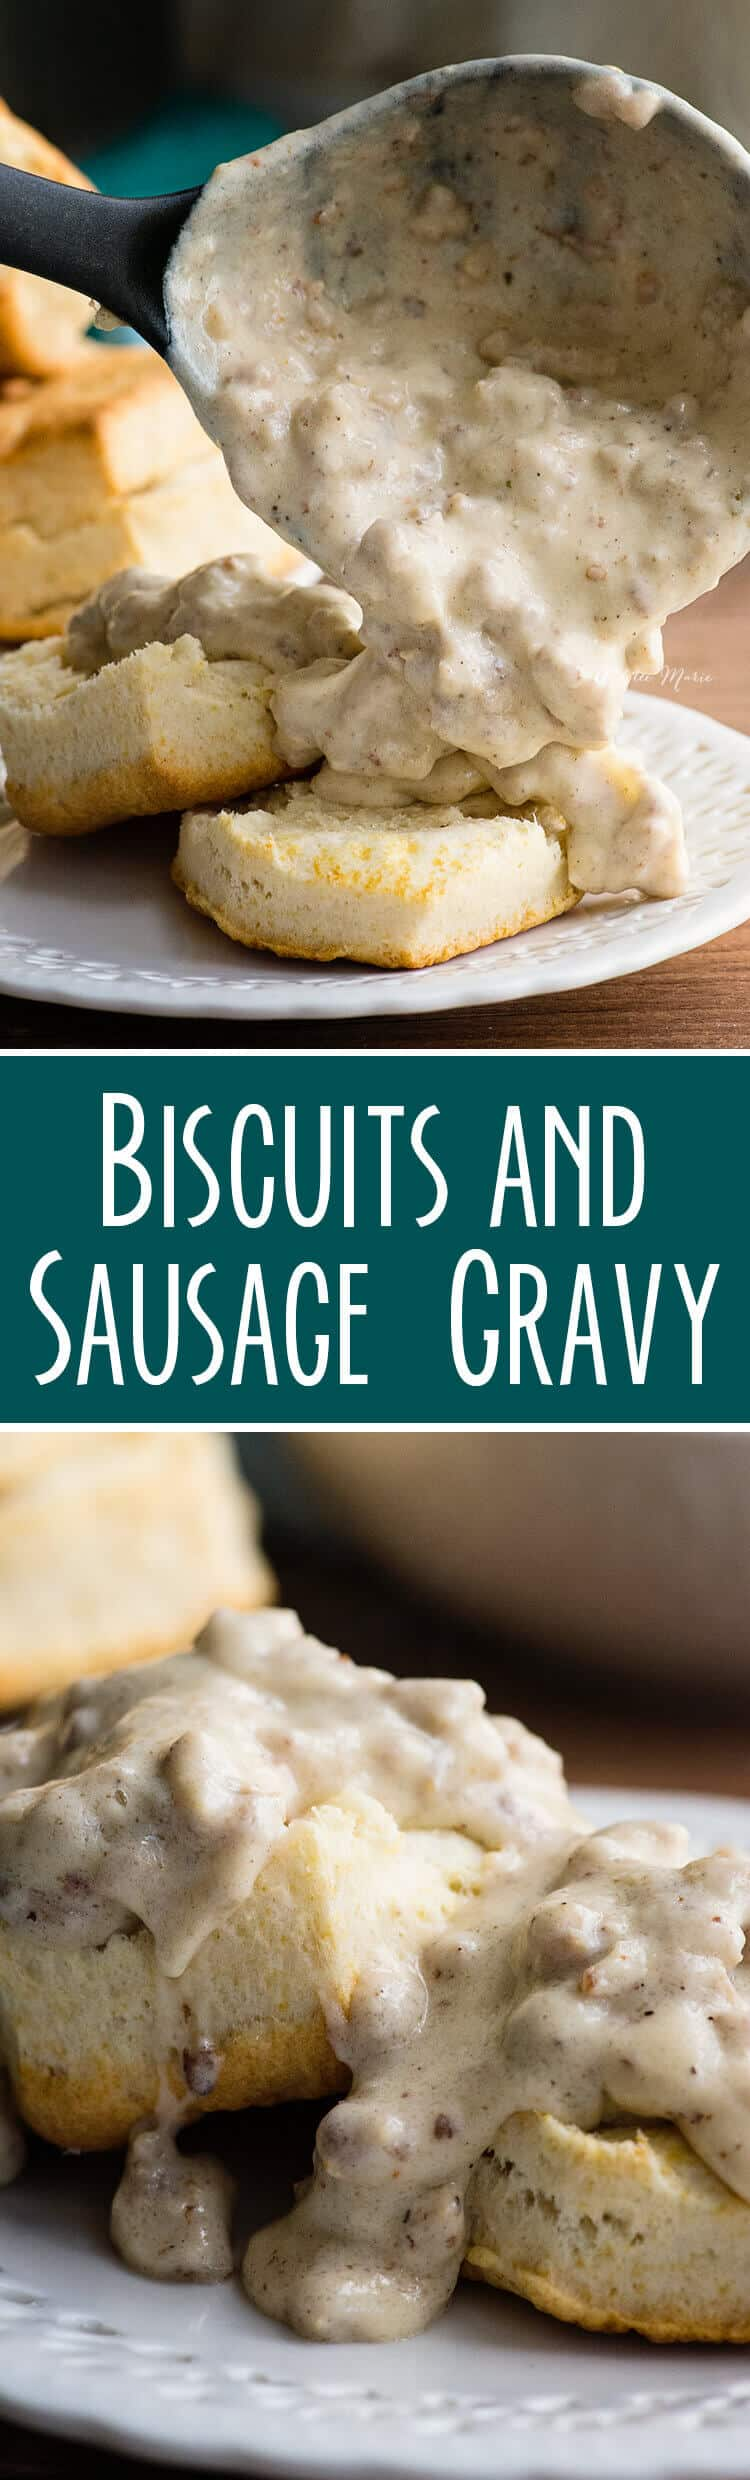 Six Ingredient Biscuits And Sausage Gravy Recipe Ashlee Marie Real Fun With Real Food